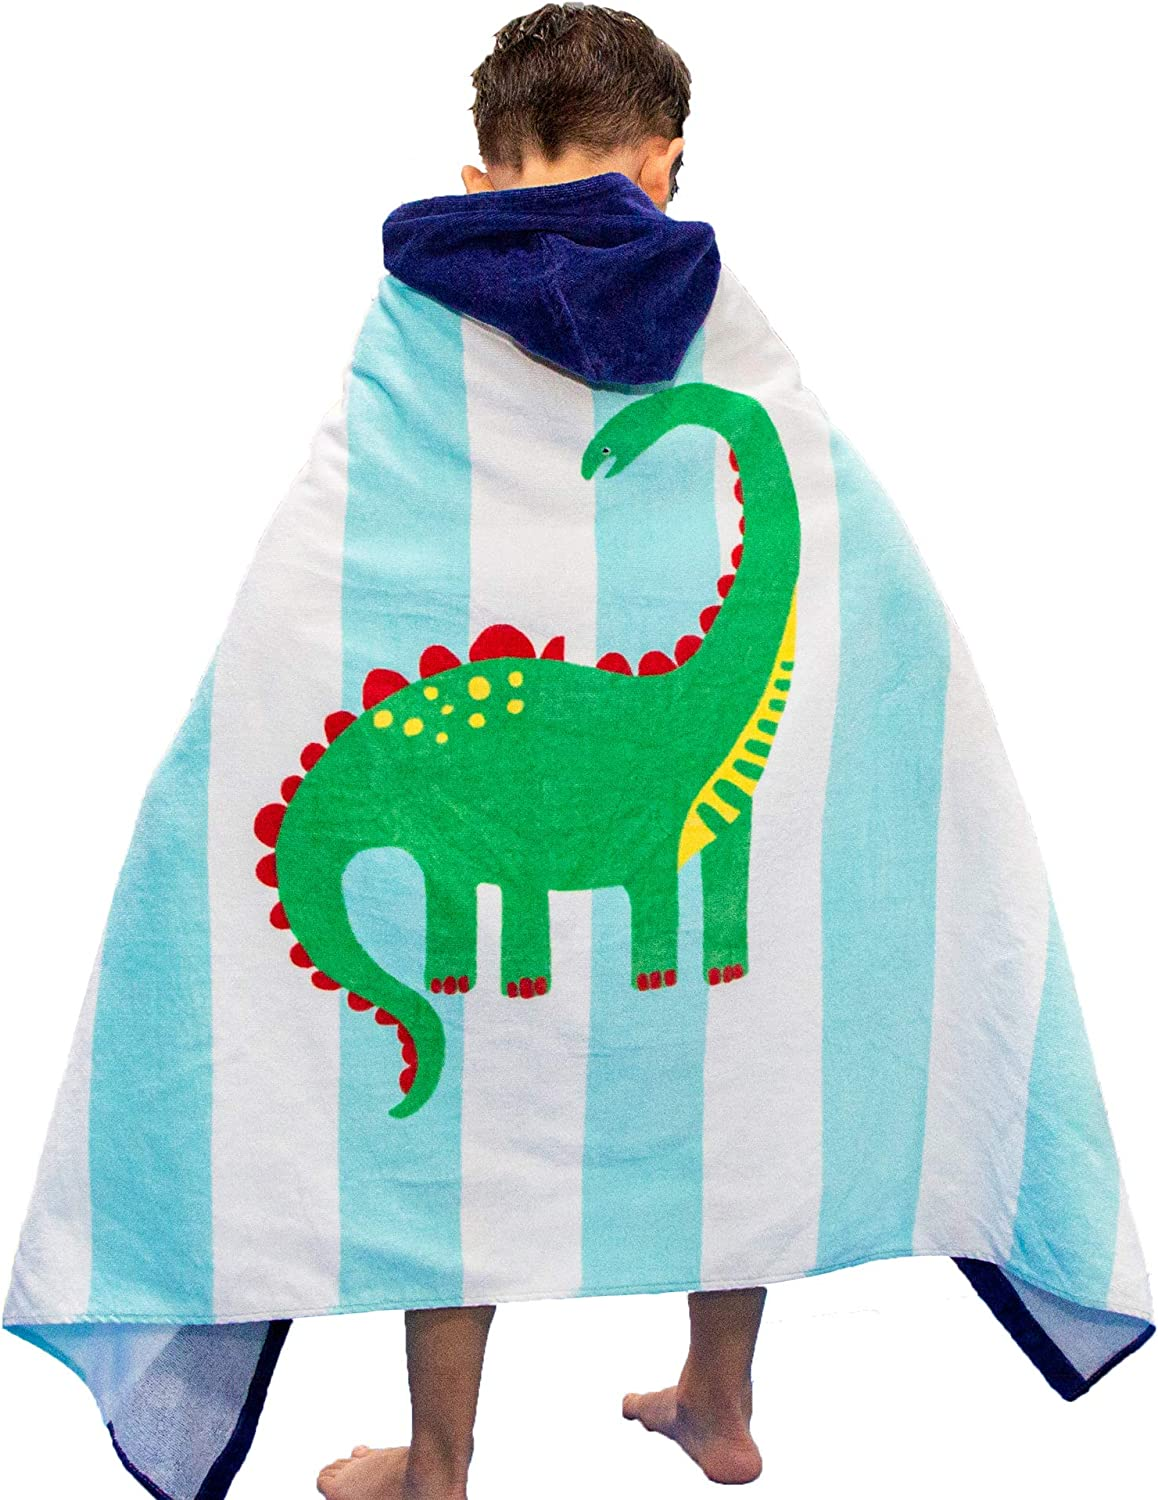 VNICGFOMGT Hooded Towel for Bombing free shipping Toddler Kids Max 72% OFF Girls Cotton Boys Beac